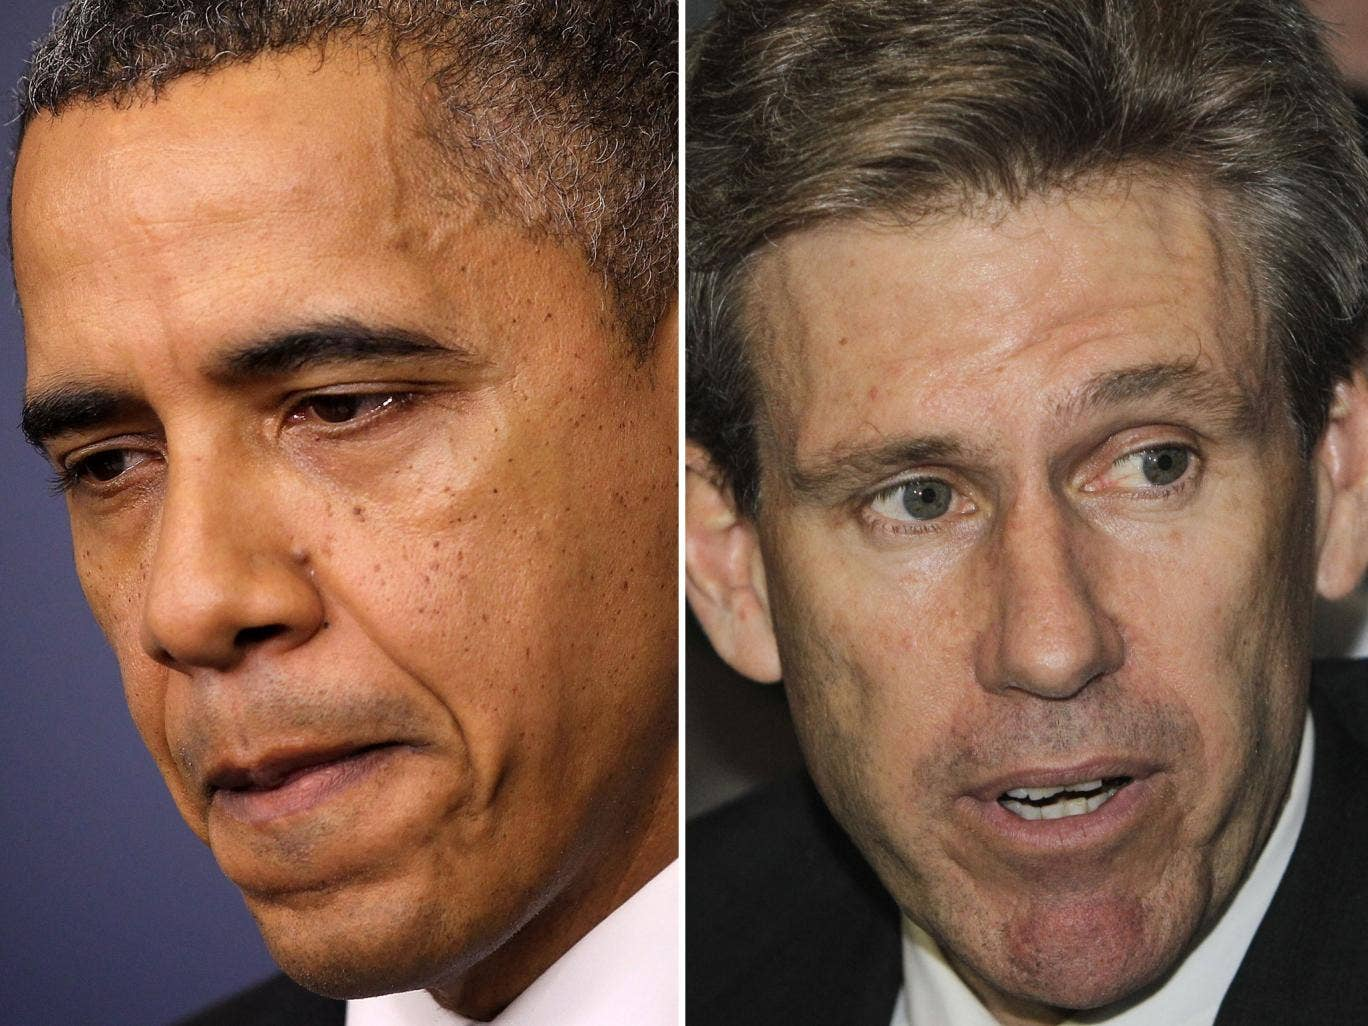 The Obama administration has been blamed for the blunders that led to the death of the US Ambassador to Libya, Chris Stevens (right), in Benghazi earlier this year